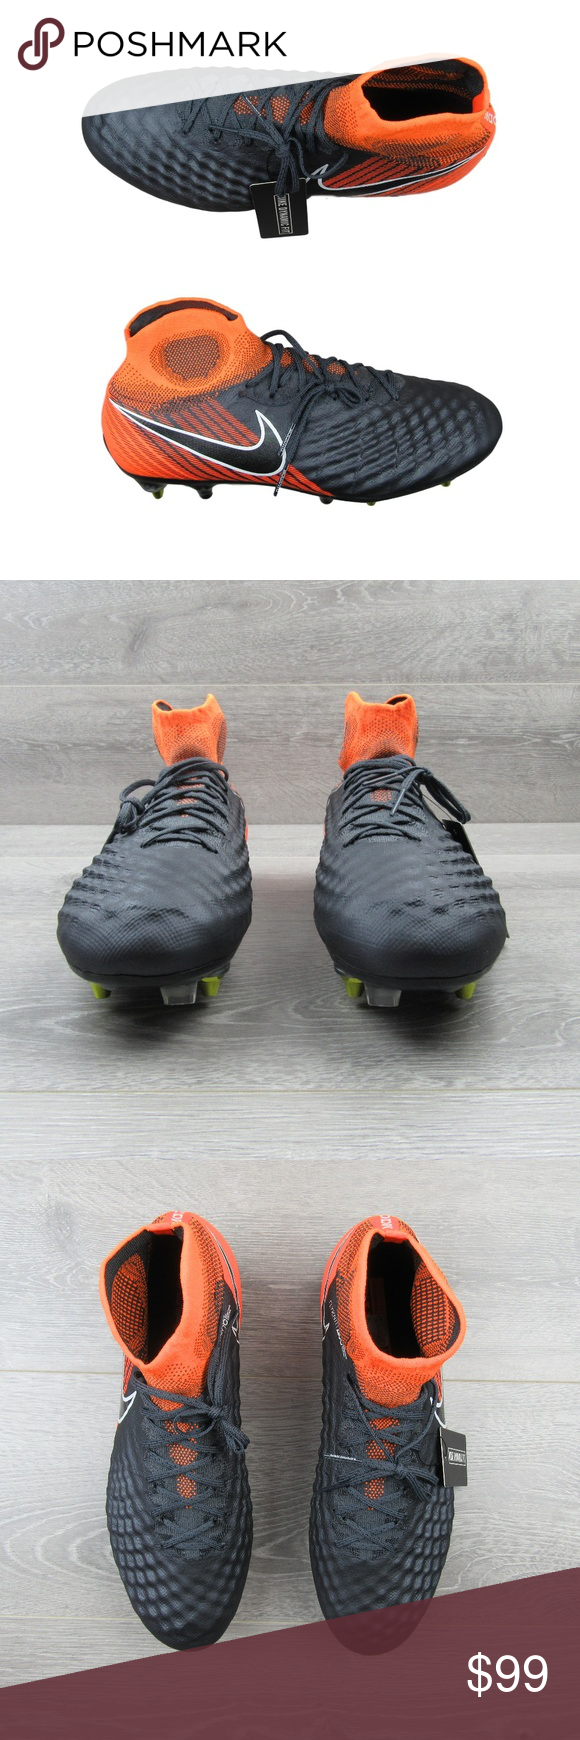 Nike Magista Obra Leather AG R in Nike Magista Nike Soccer